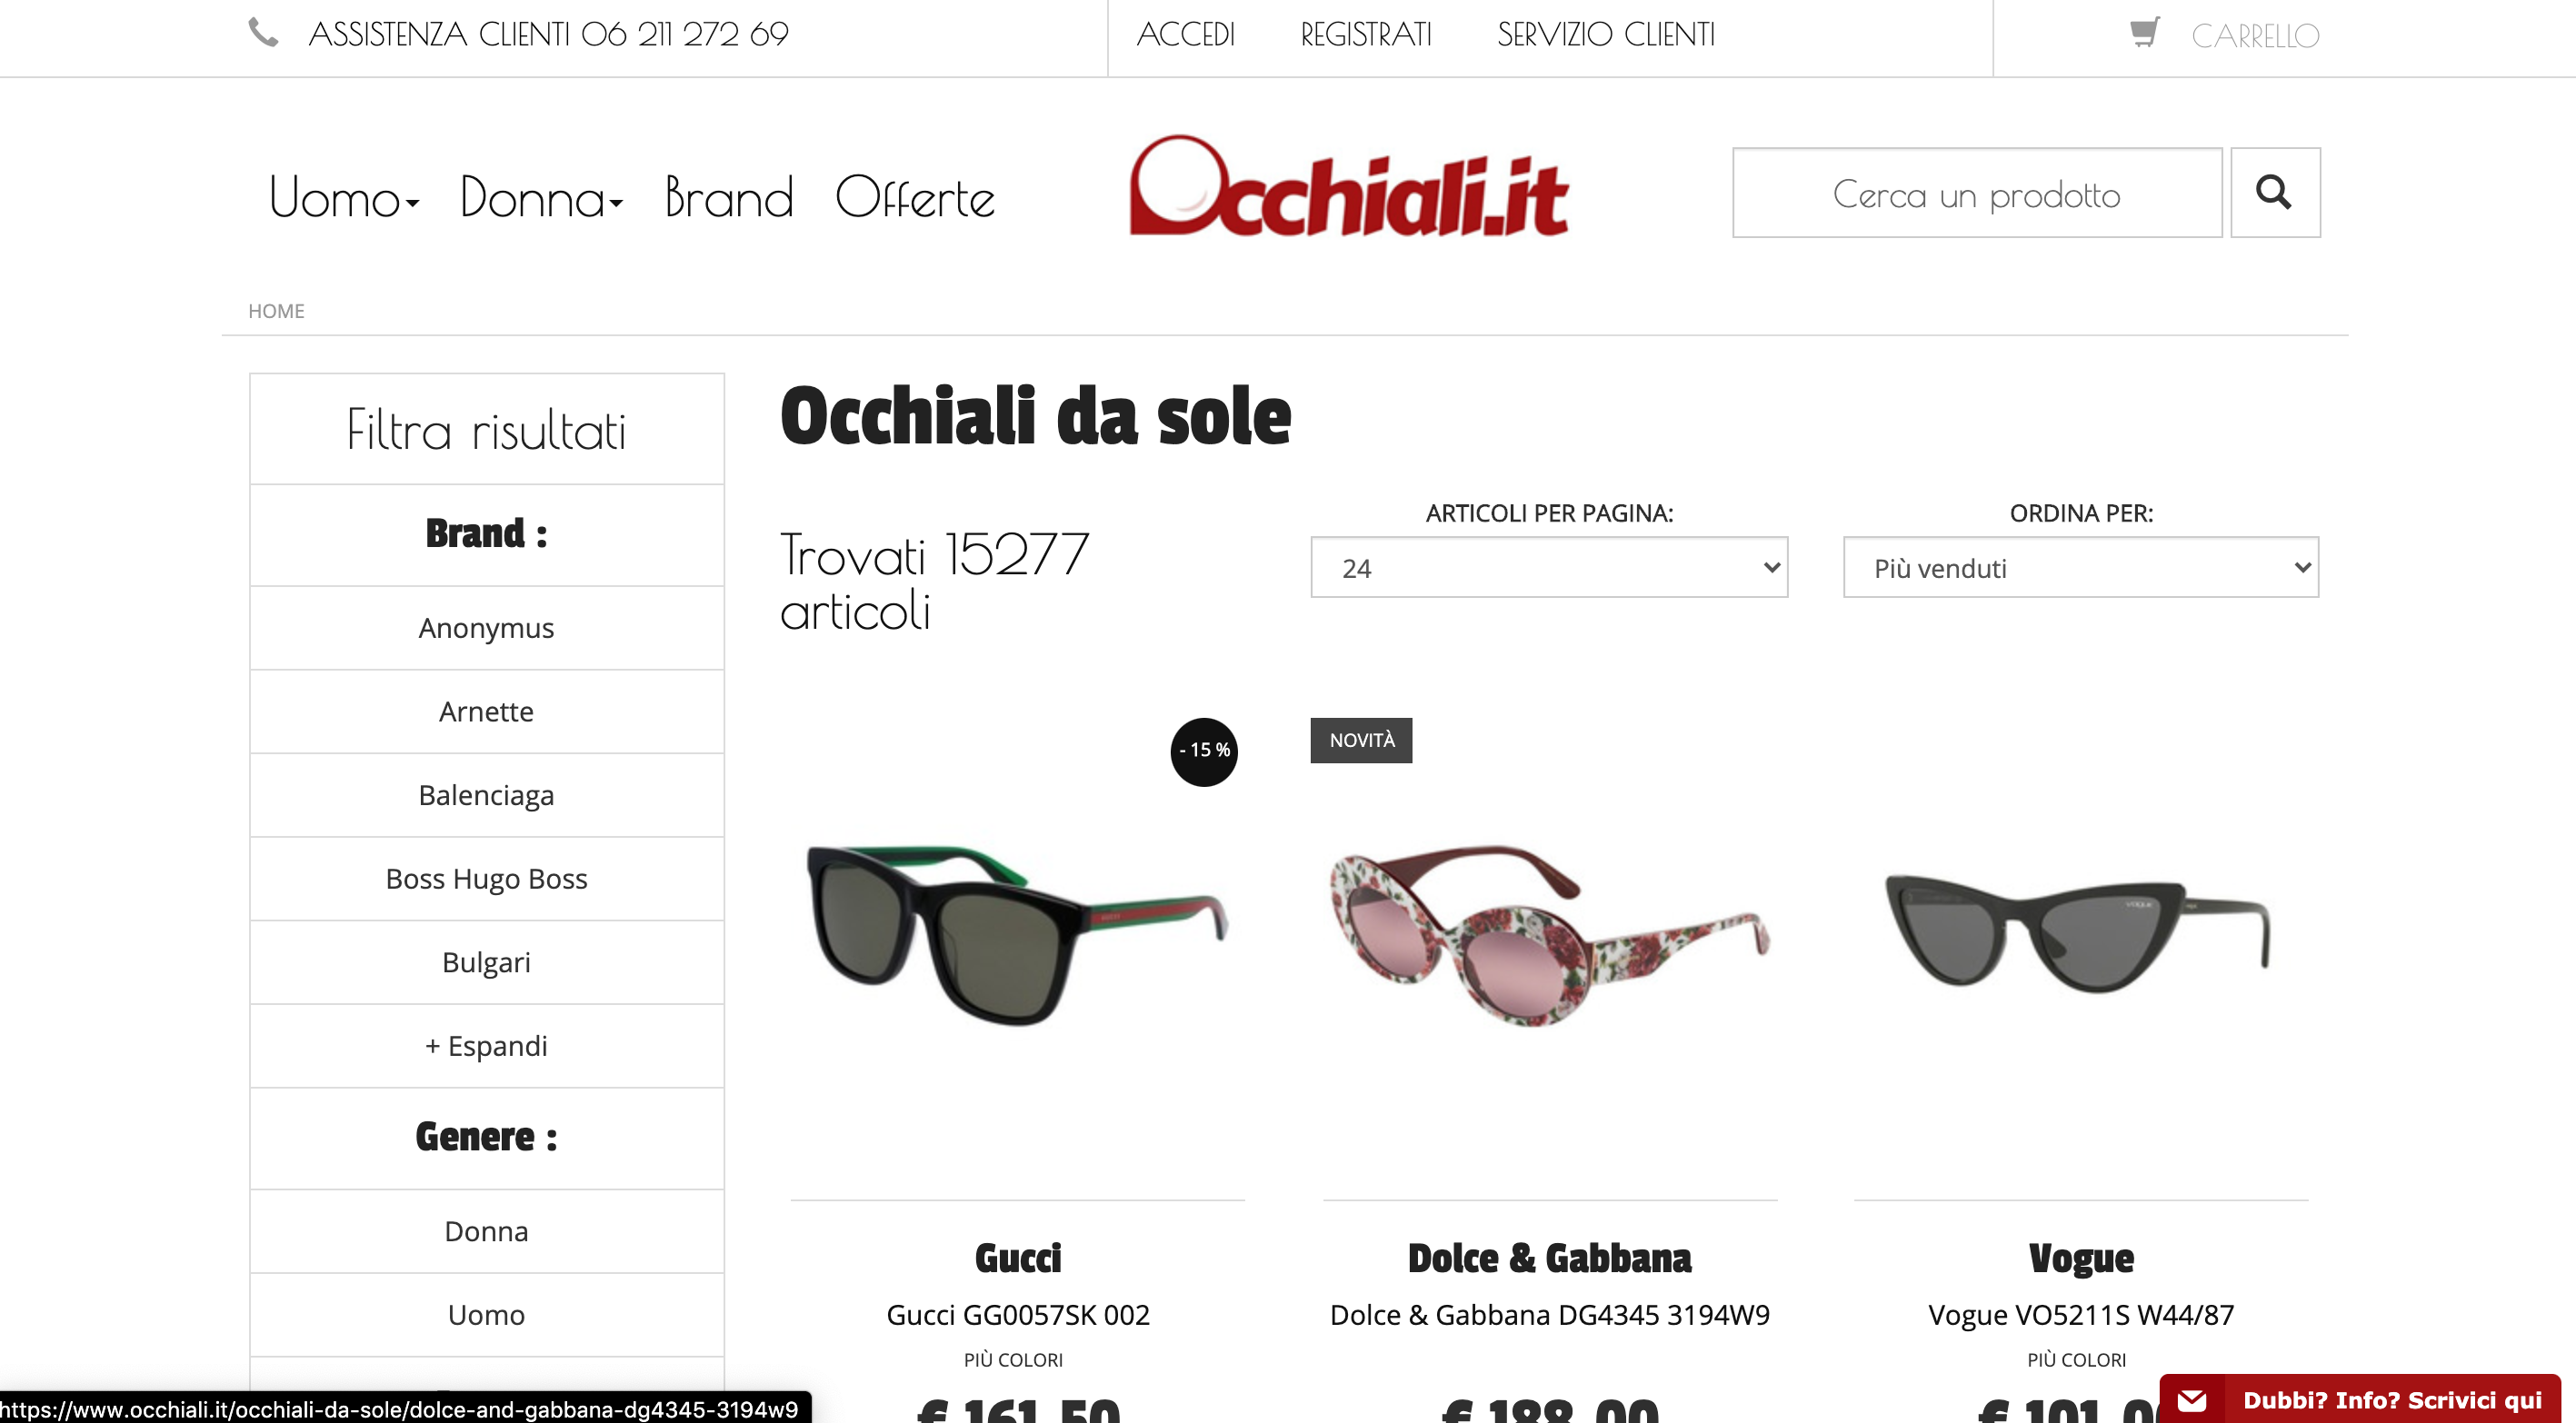 Occhiali.it occhiali da sole